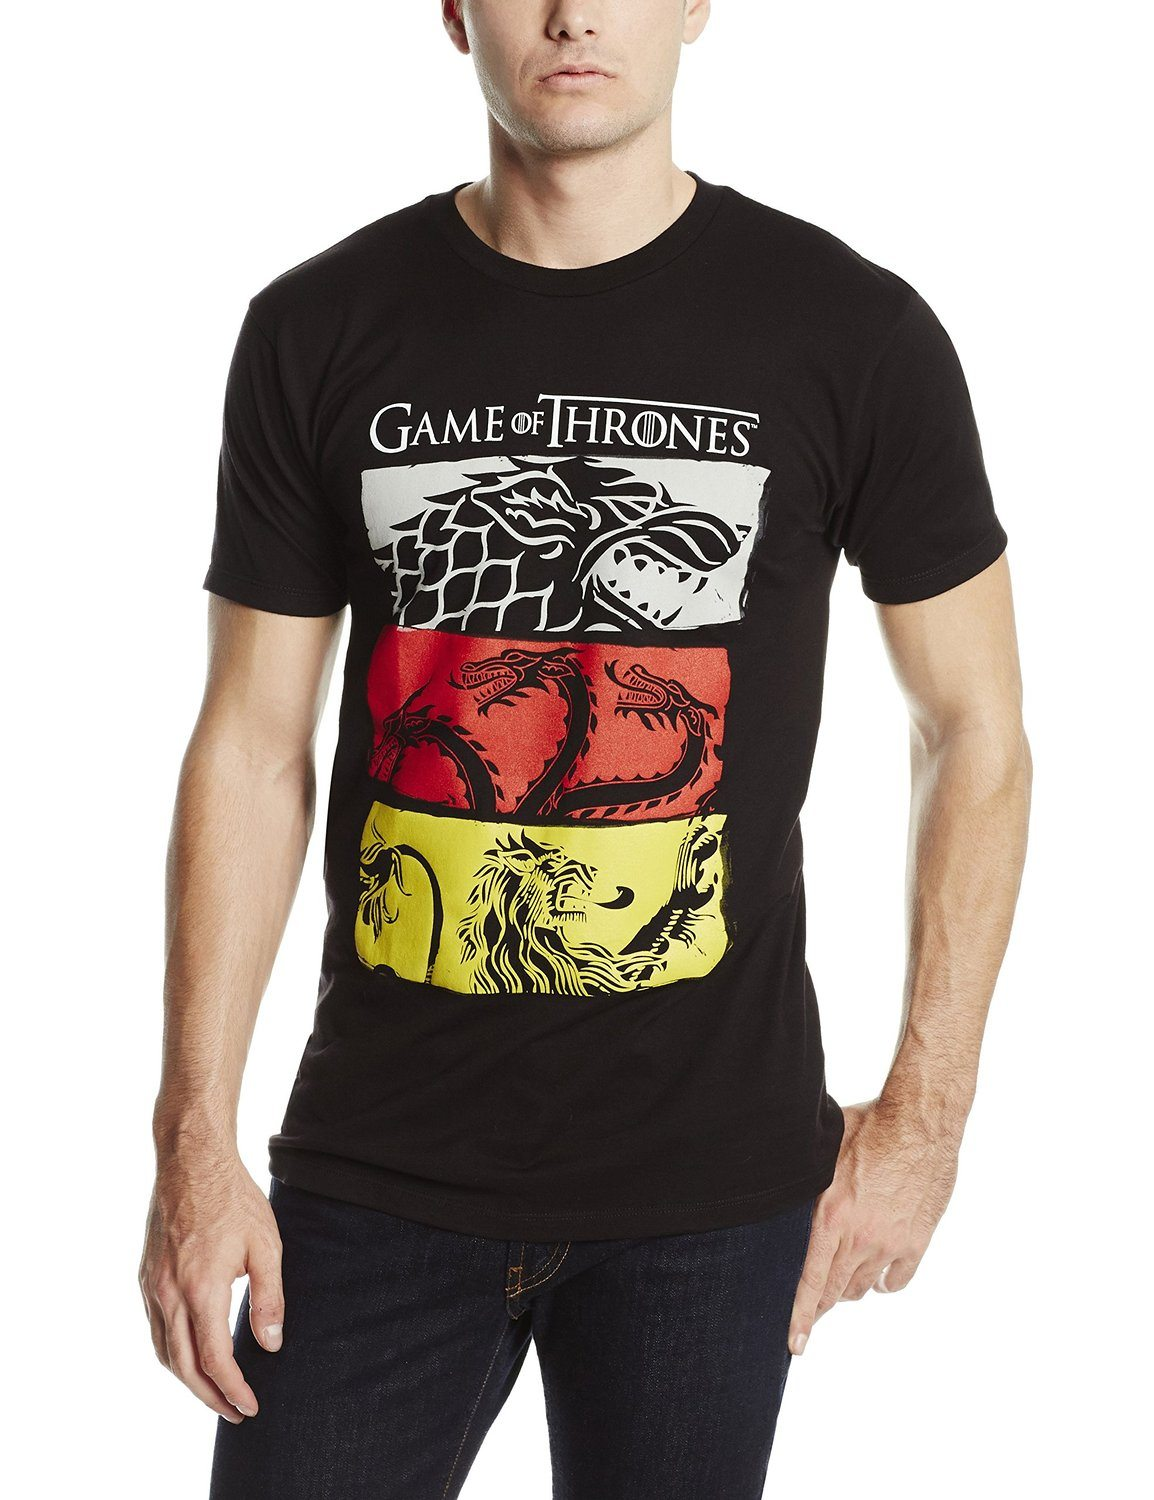 HBO'S Game of Thrones Men's 3 House Symbols T-Shirt